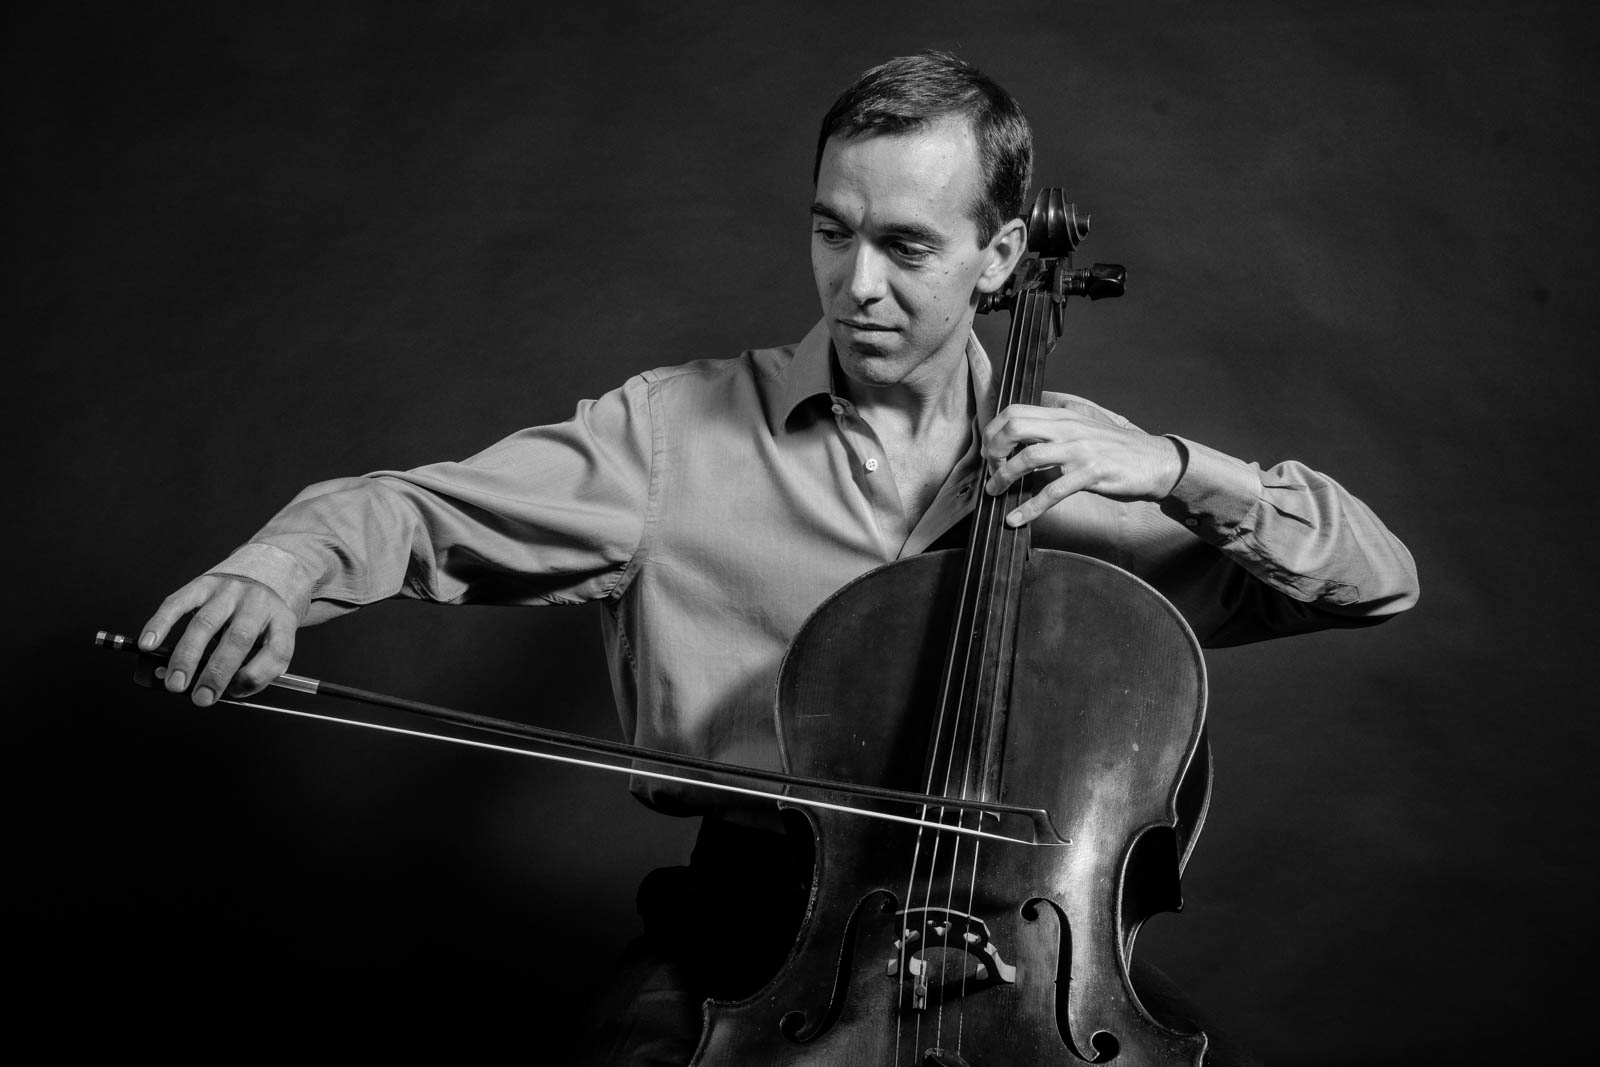 Domenico Ermirio - Cellist